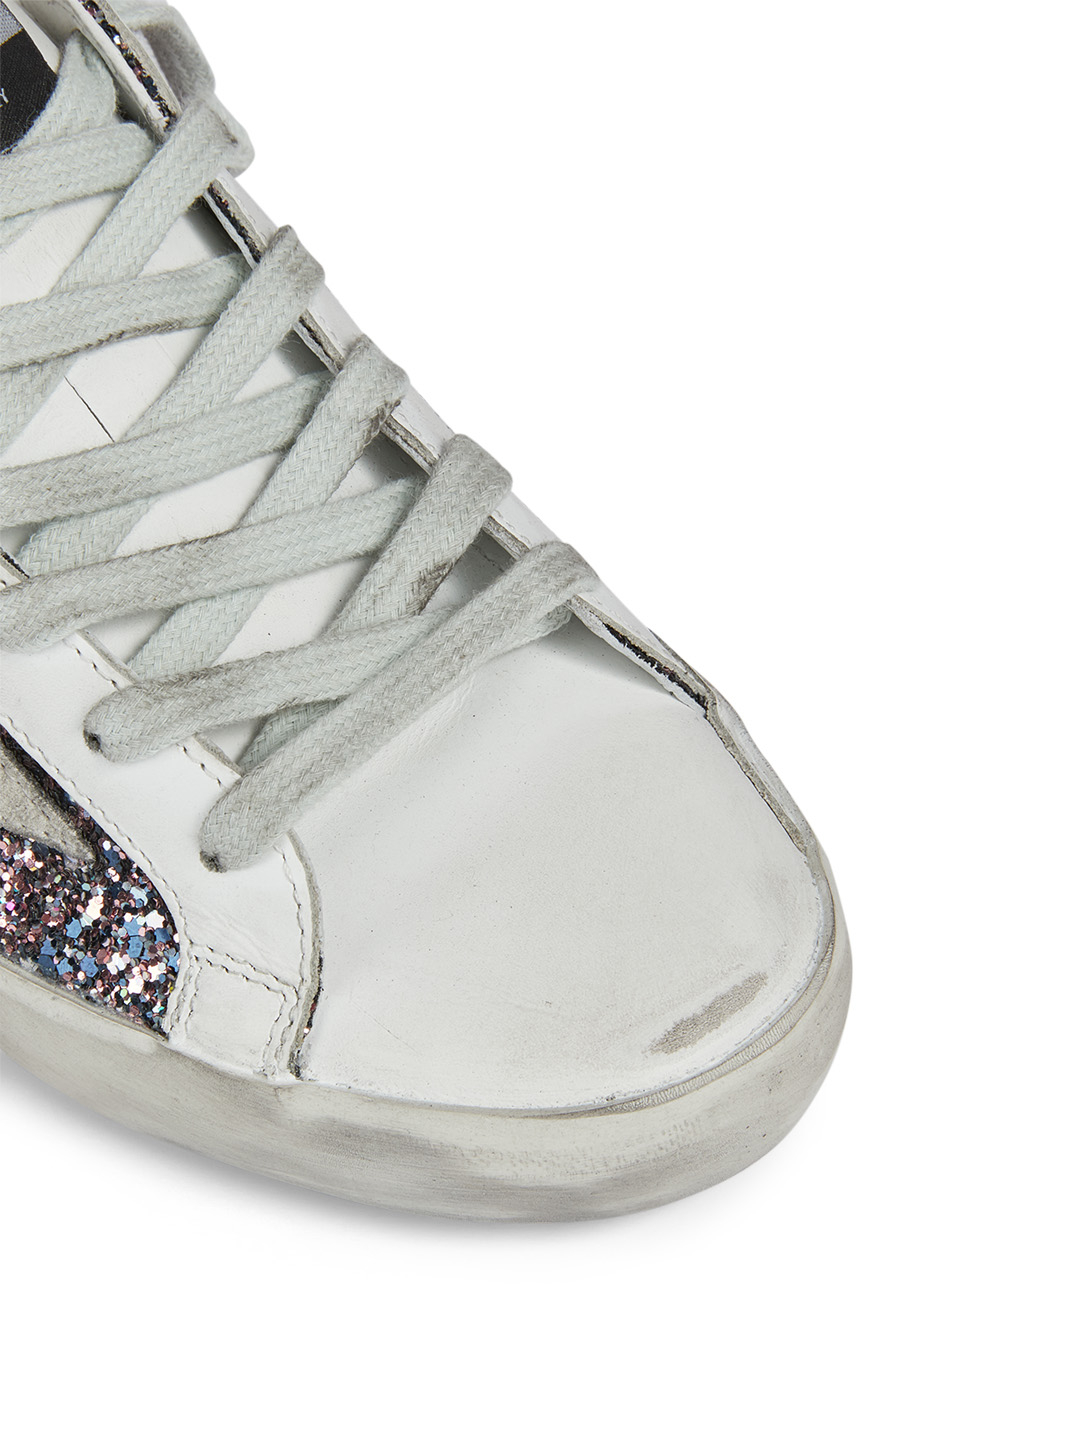 GOLDEN GOOSE Superstar Glitter Sneakers Women's Grey